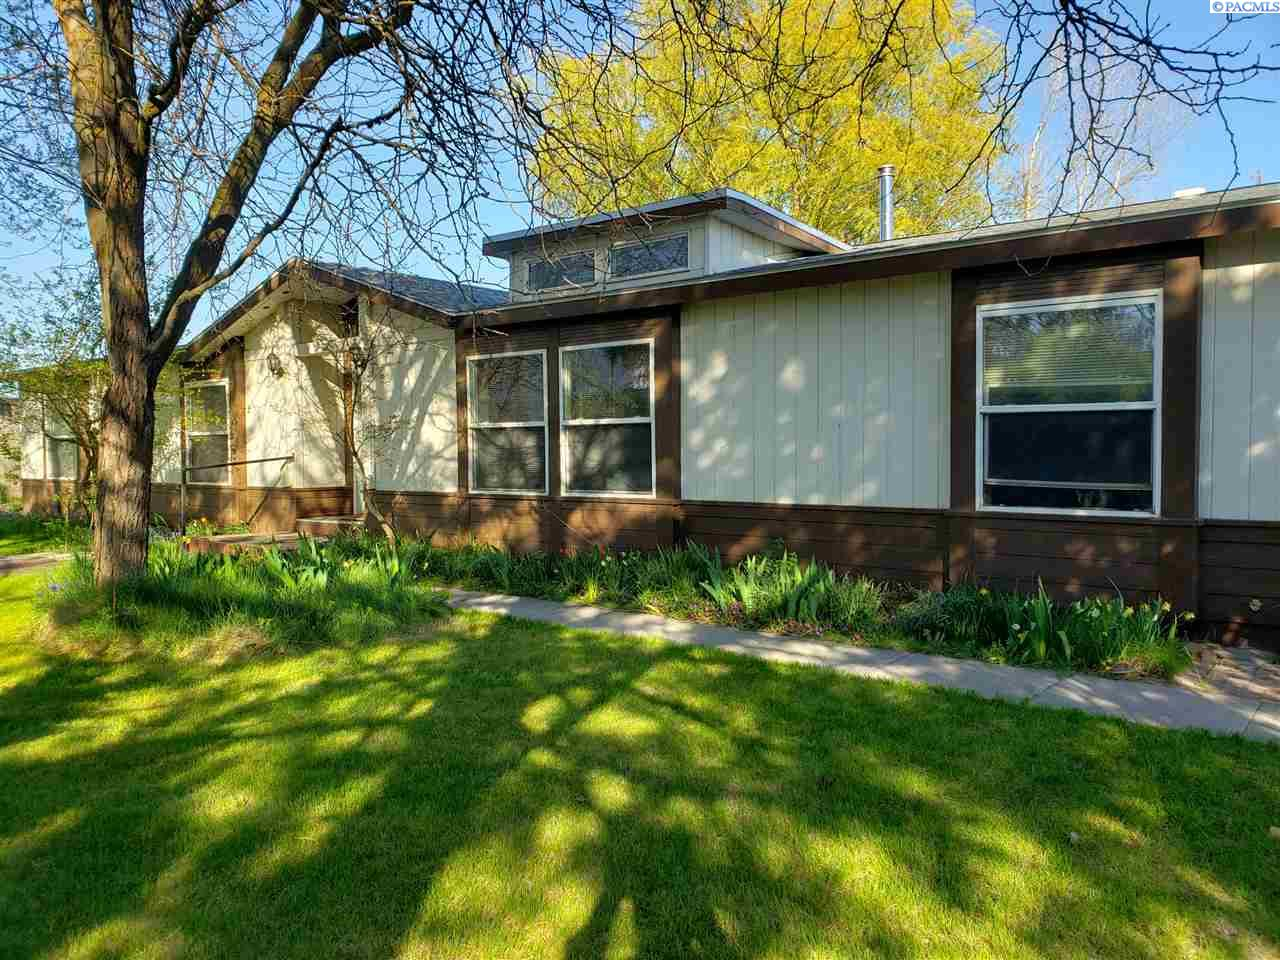 Manufactured Home for Sale at 245 NE Columbia River Lane Washtucna, Washington 99371 United States